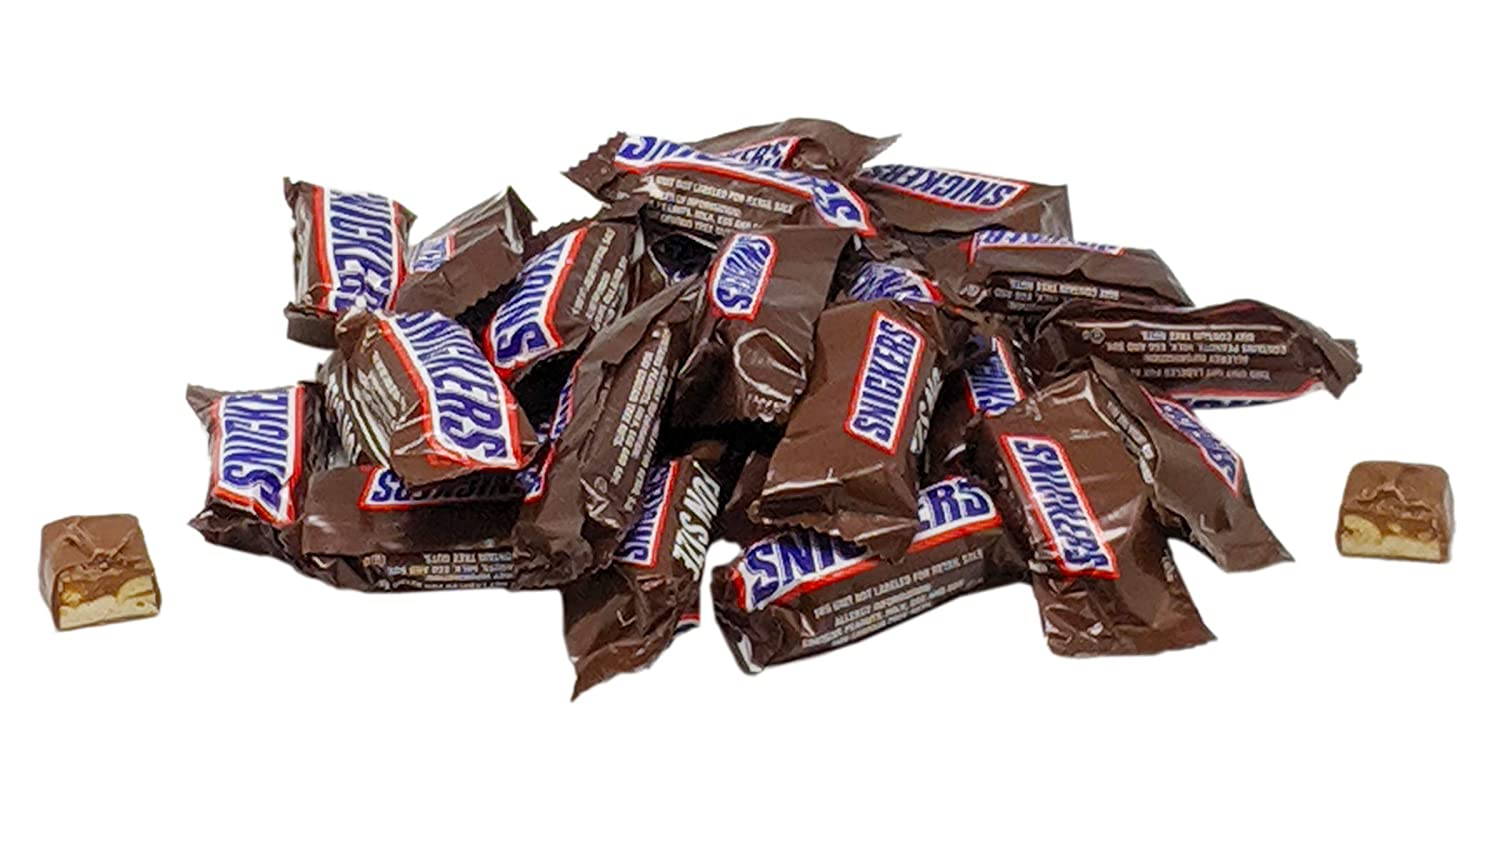 Snickers Fun Size Chocolate Caramel Candy New arrival low-pricing 2 LB - Resealable Bars